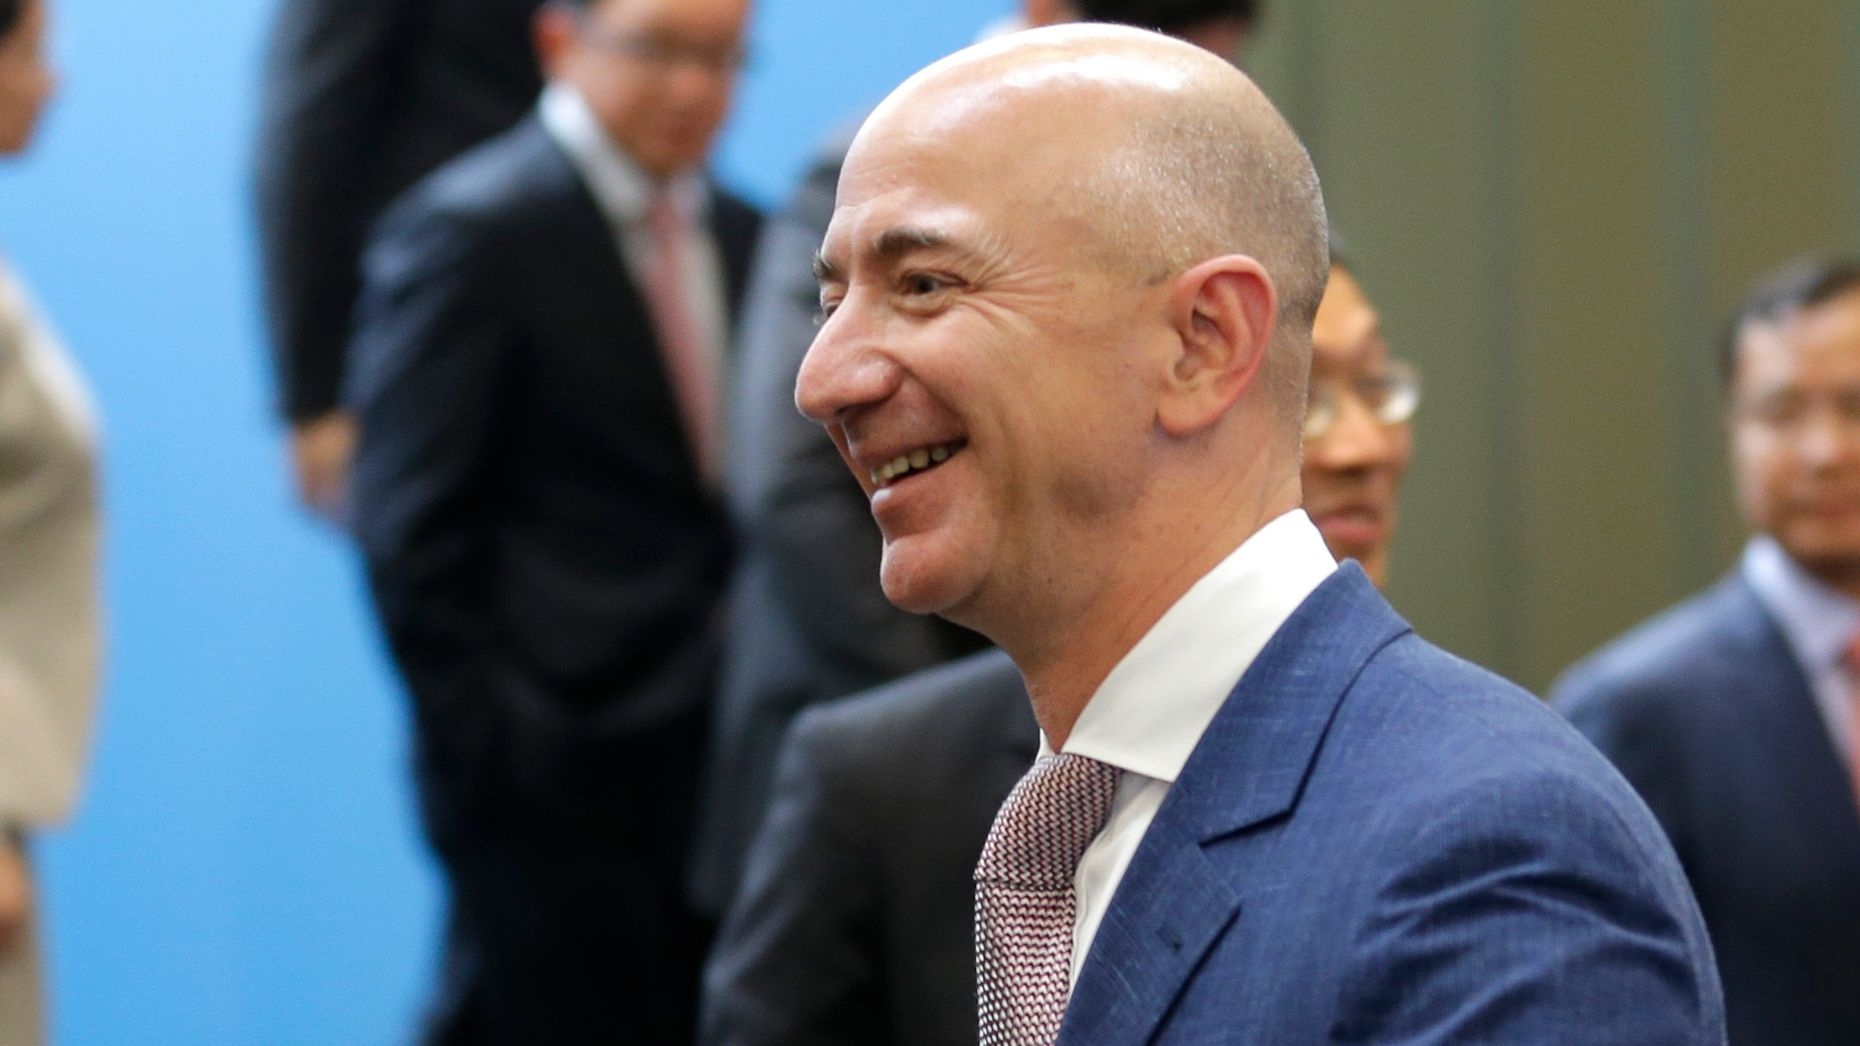 Jeff Bezos. Photo by AP.